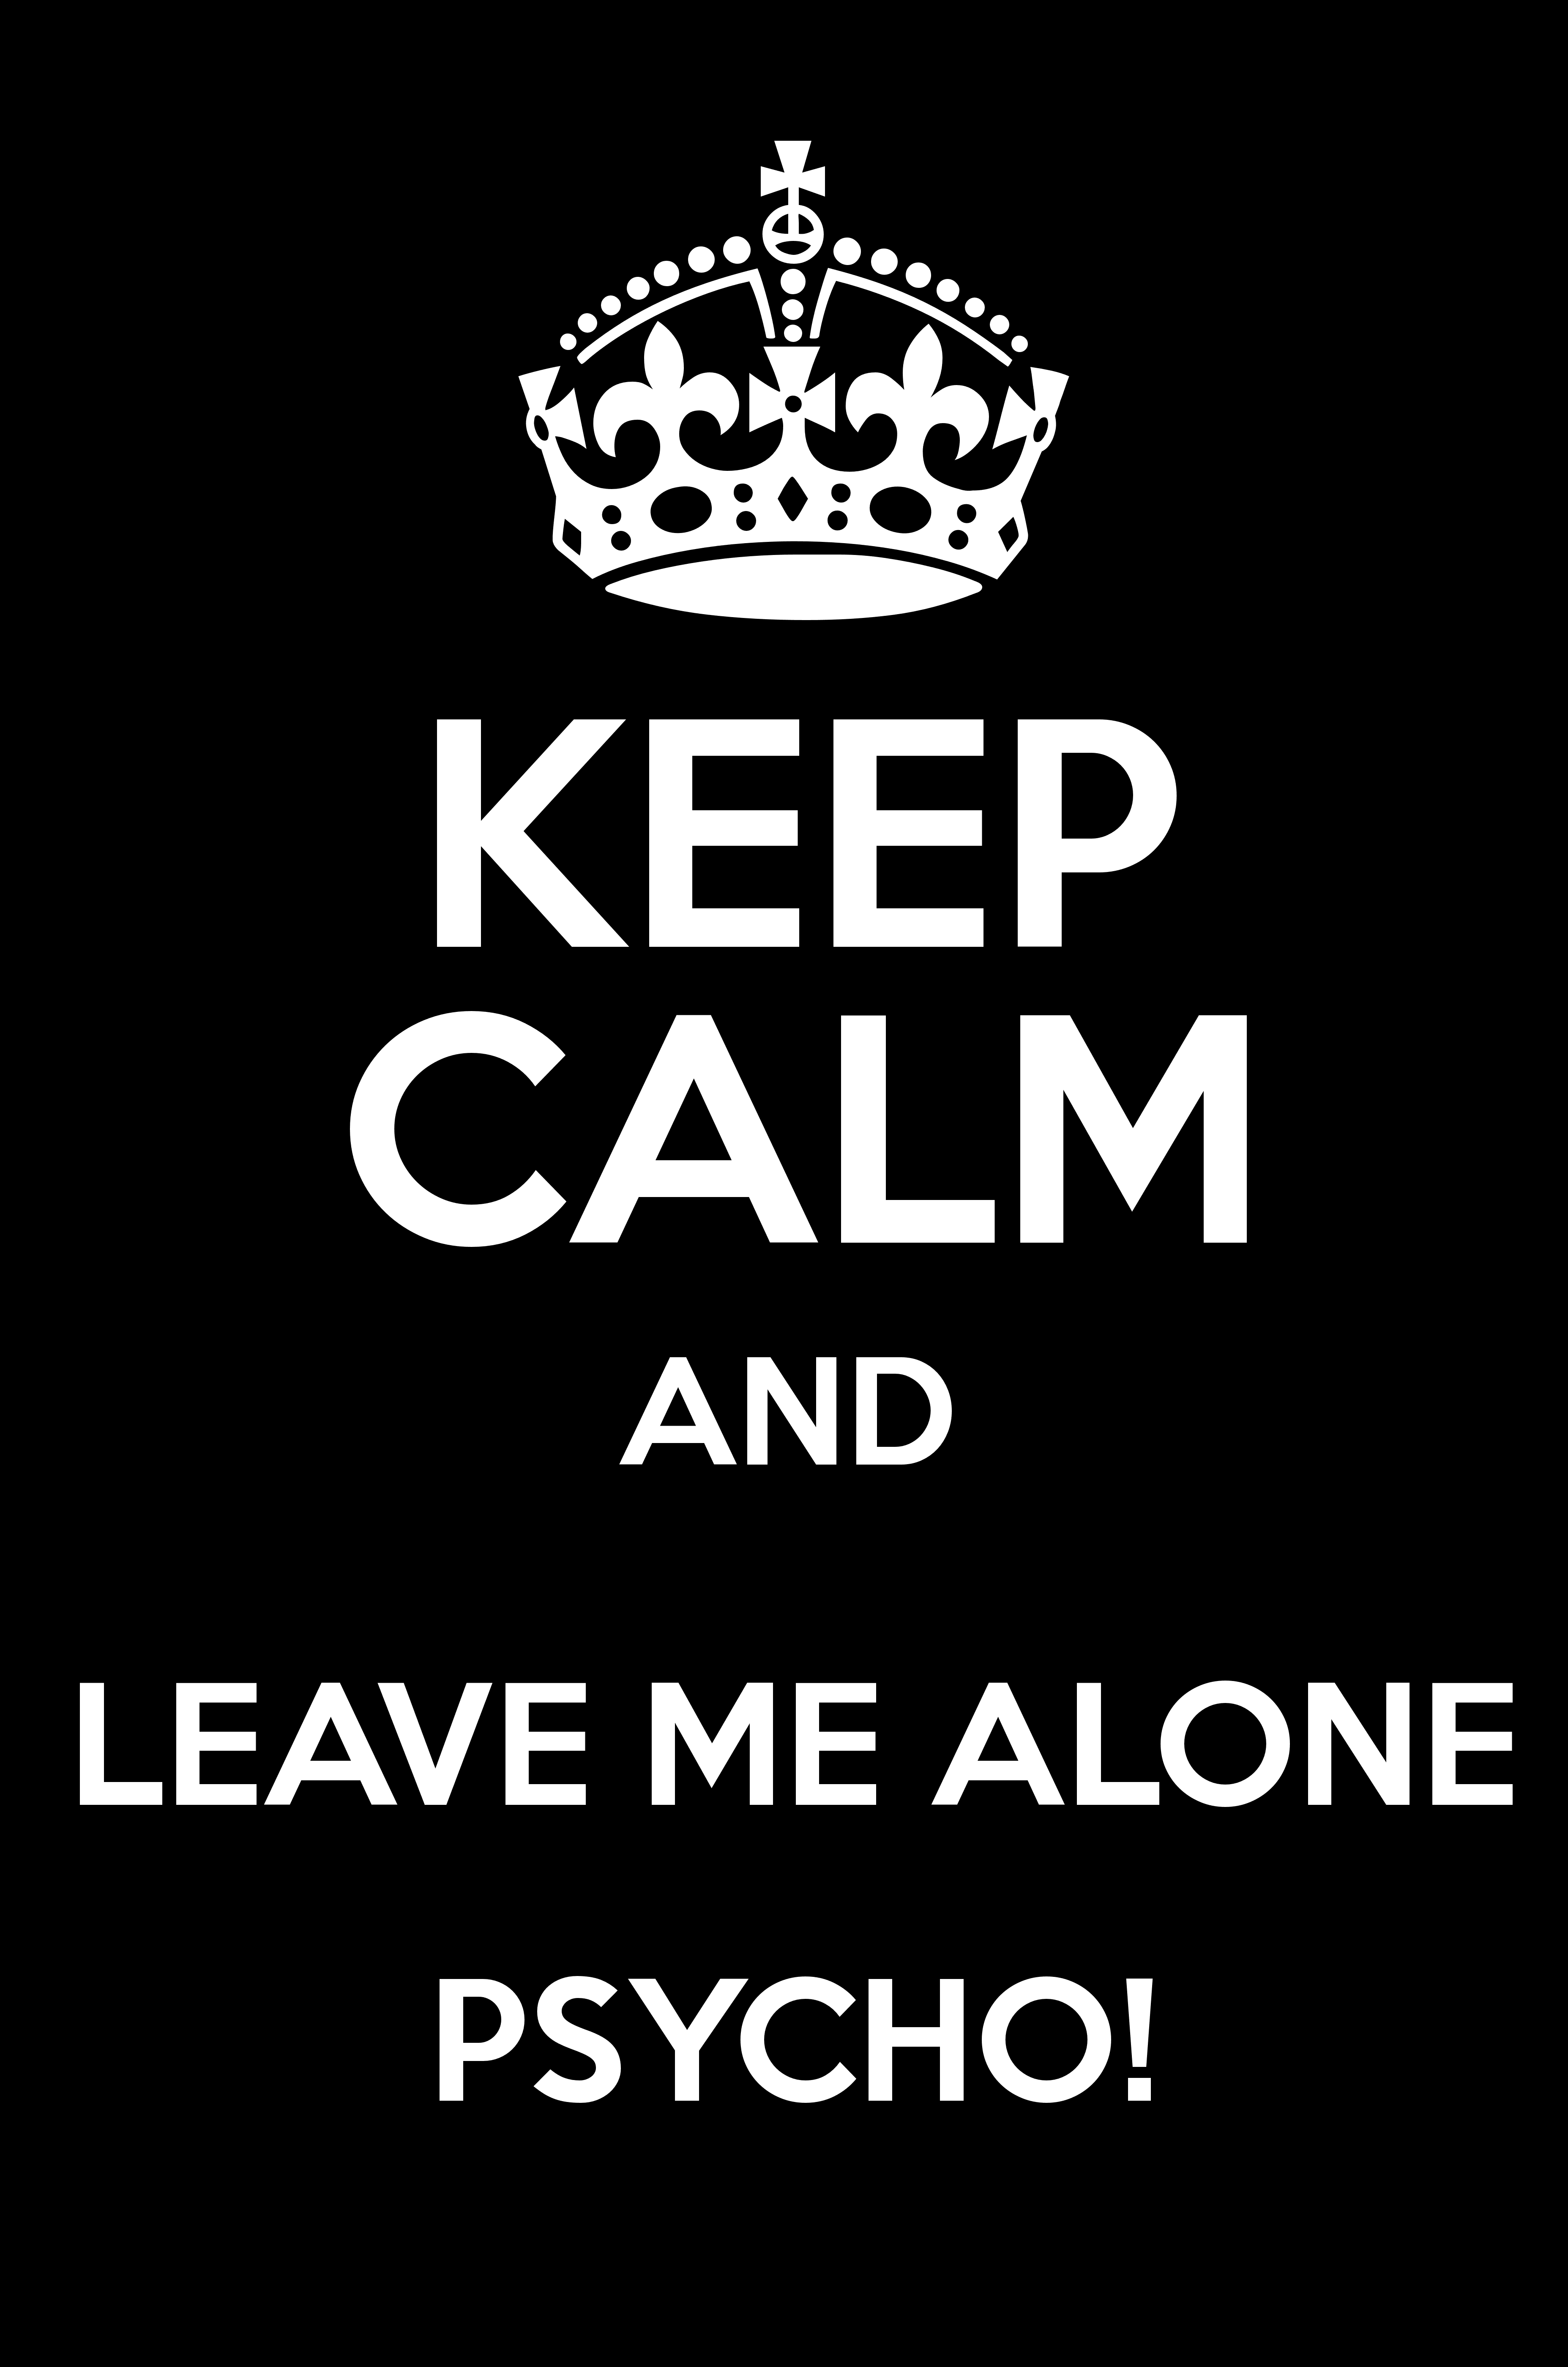 KEEP CALM AND LEAVE ME ALONE PSYCHO! - Keep Calm and Posters